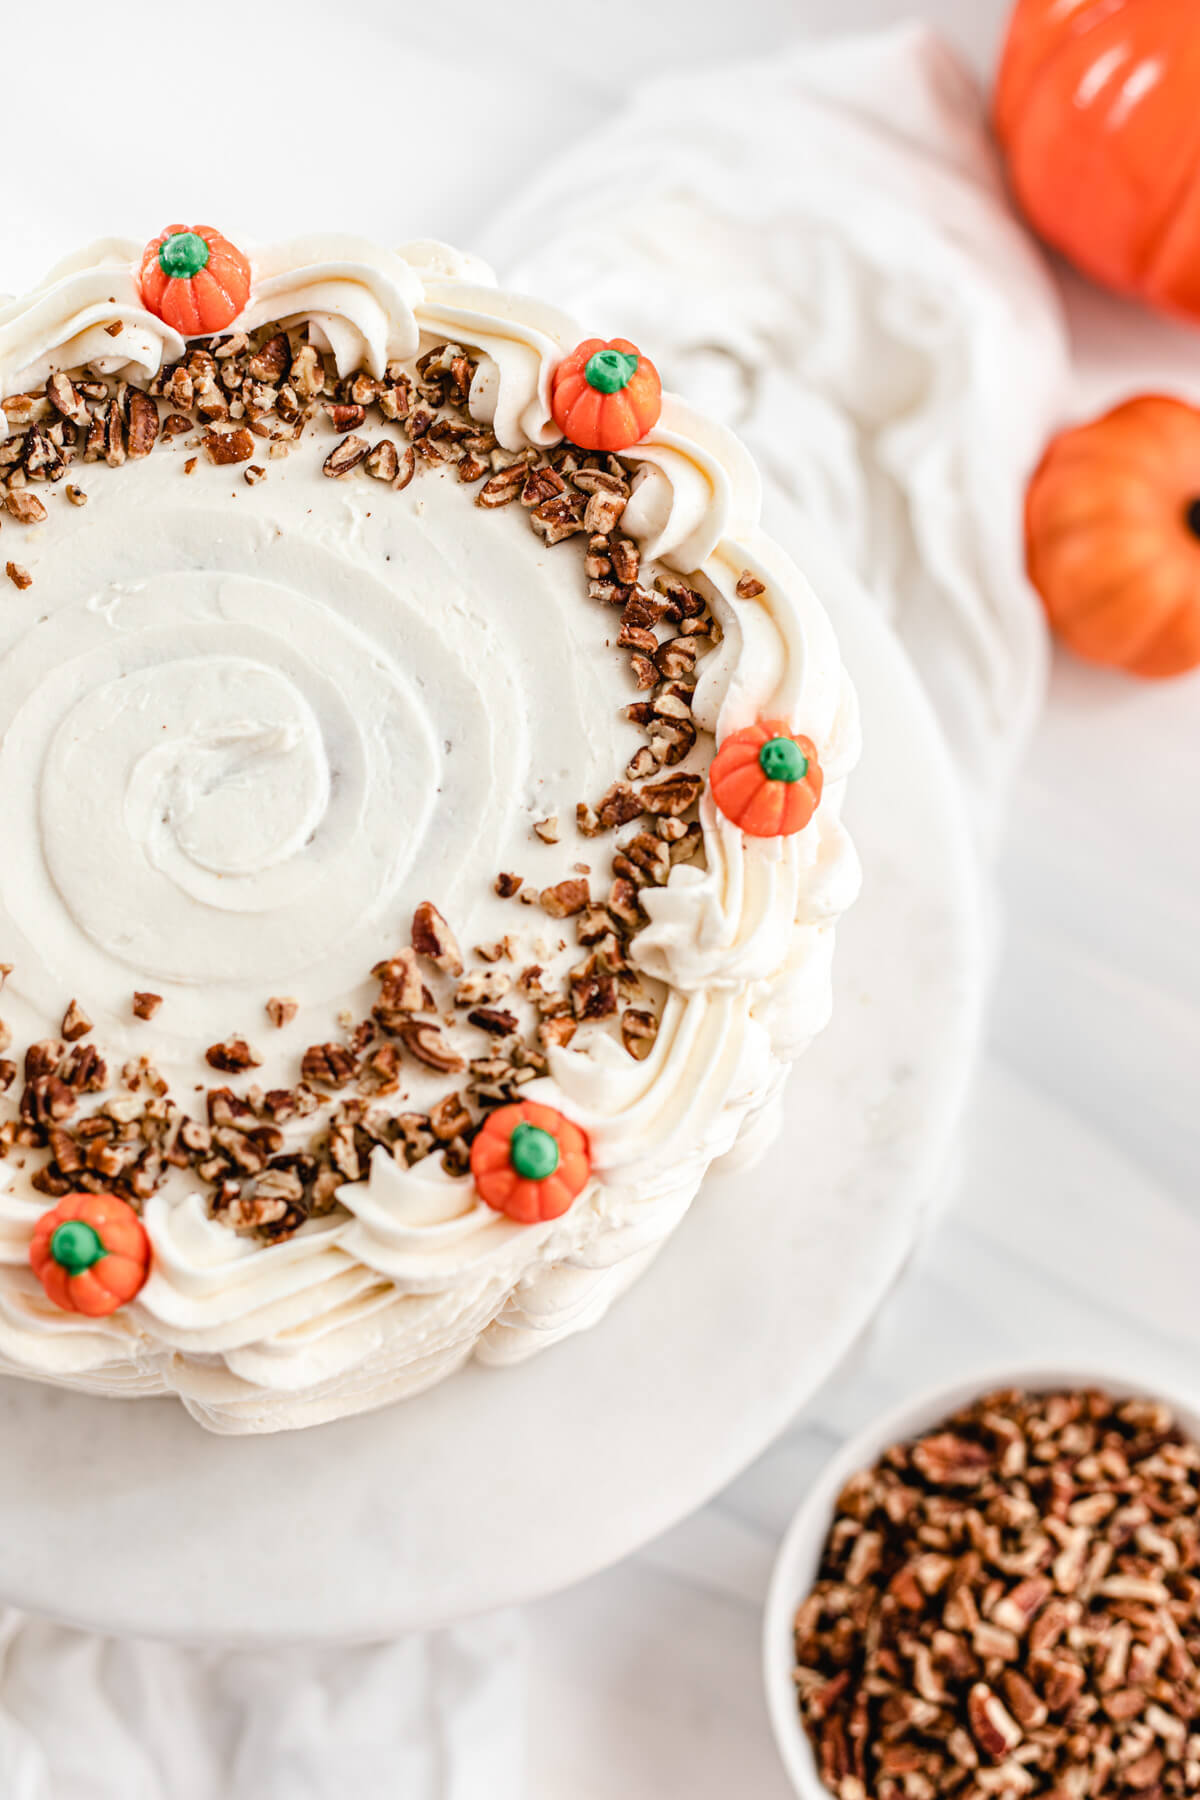 top view of cake decorated with chopped pecans and pumpkin candies